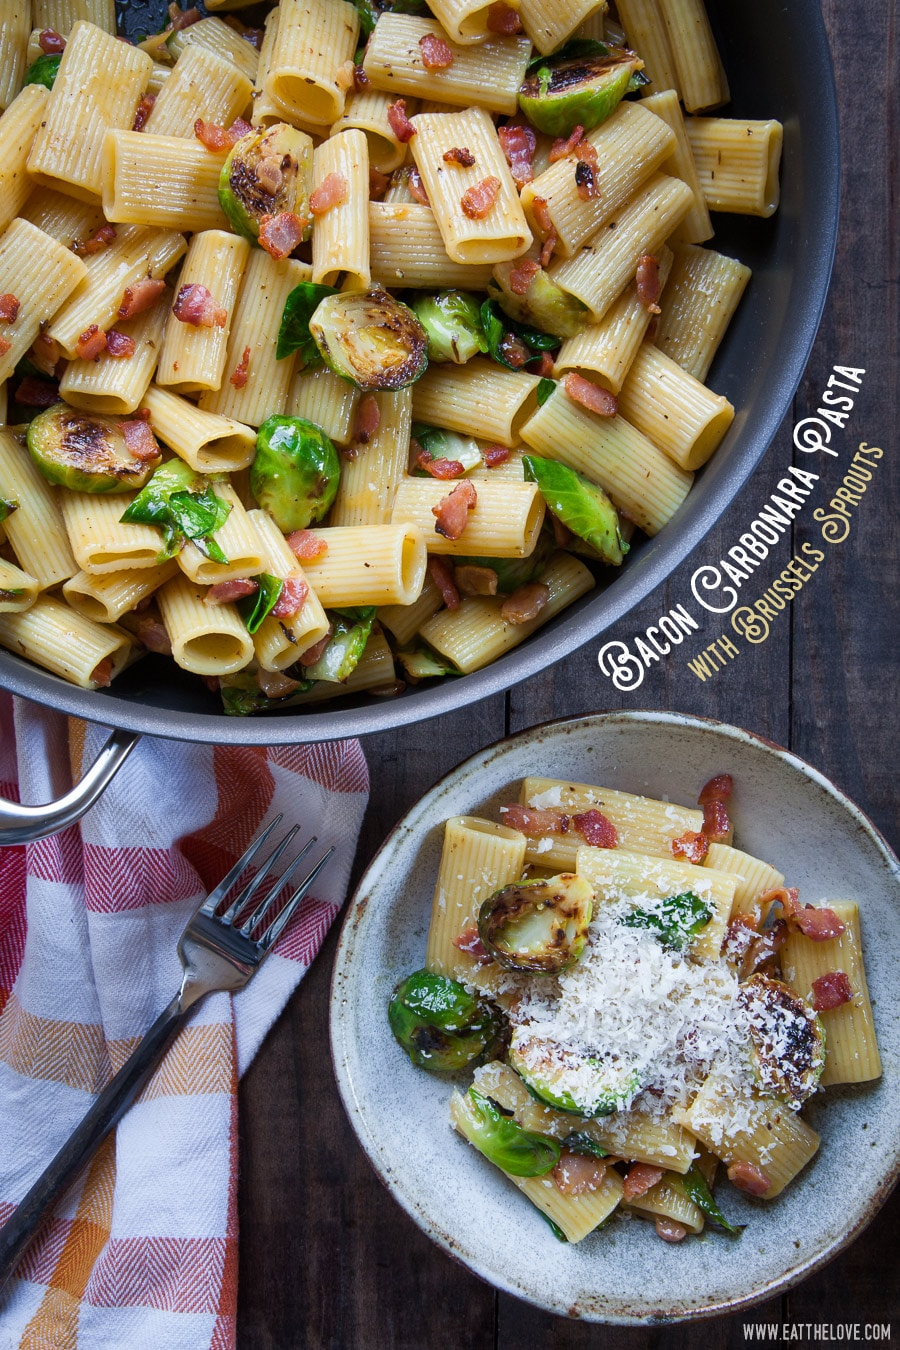 Bacon Carbonara Pasta with Brussels Sprouts. Photo and recipe by Irvin Lin